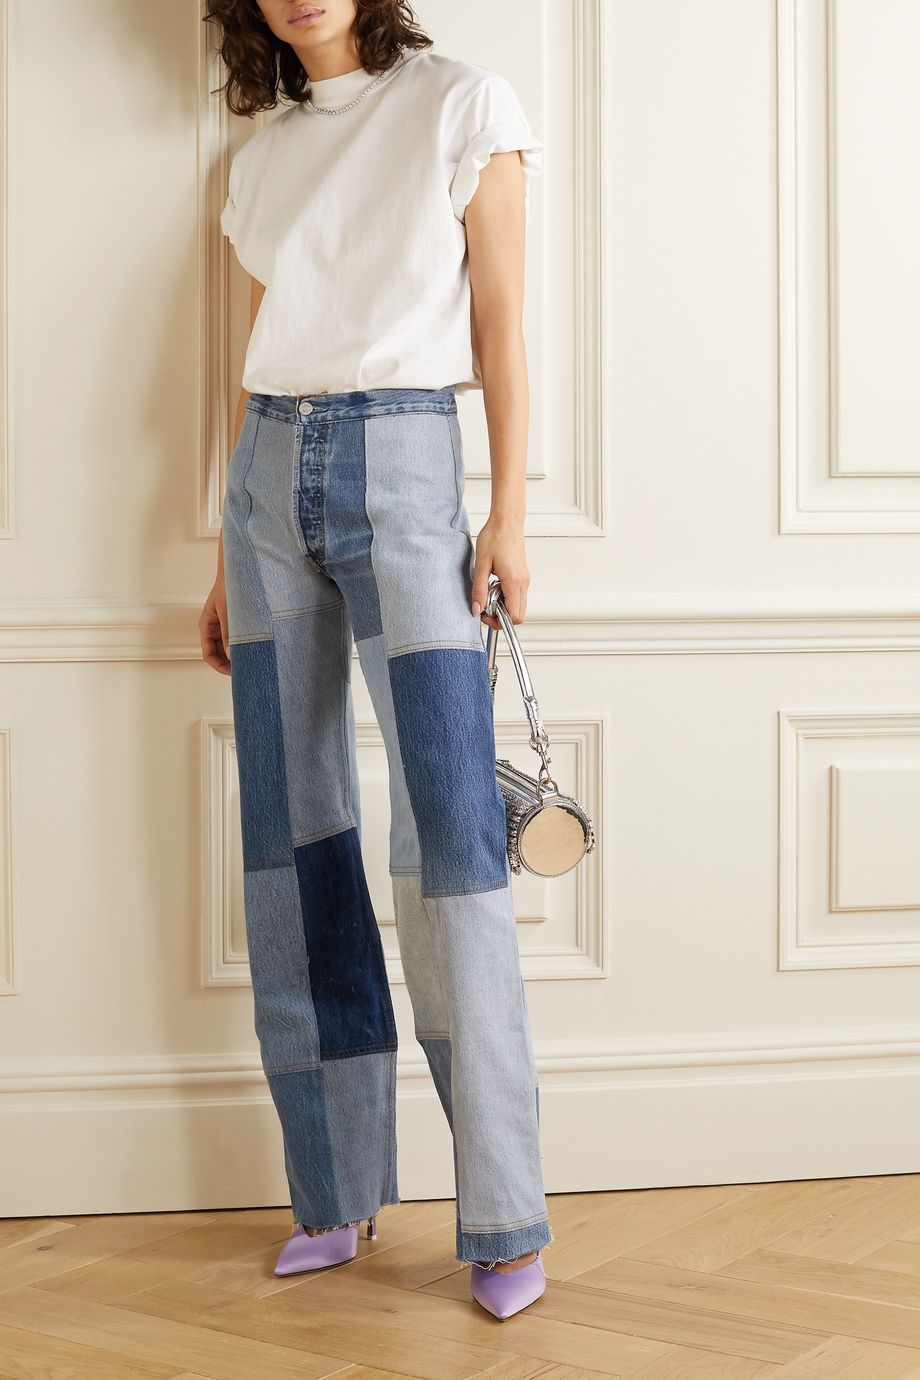 RE/DONE + Amina Muaddi patchwork high-rise flared jeans